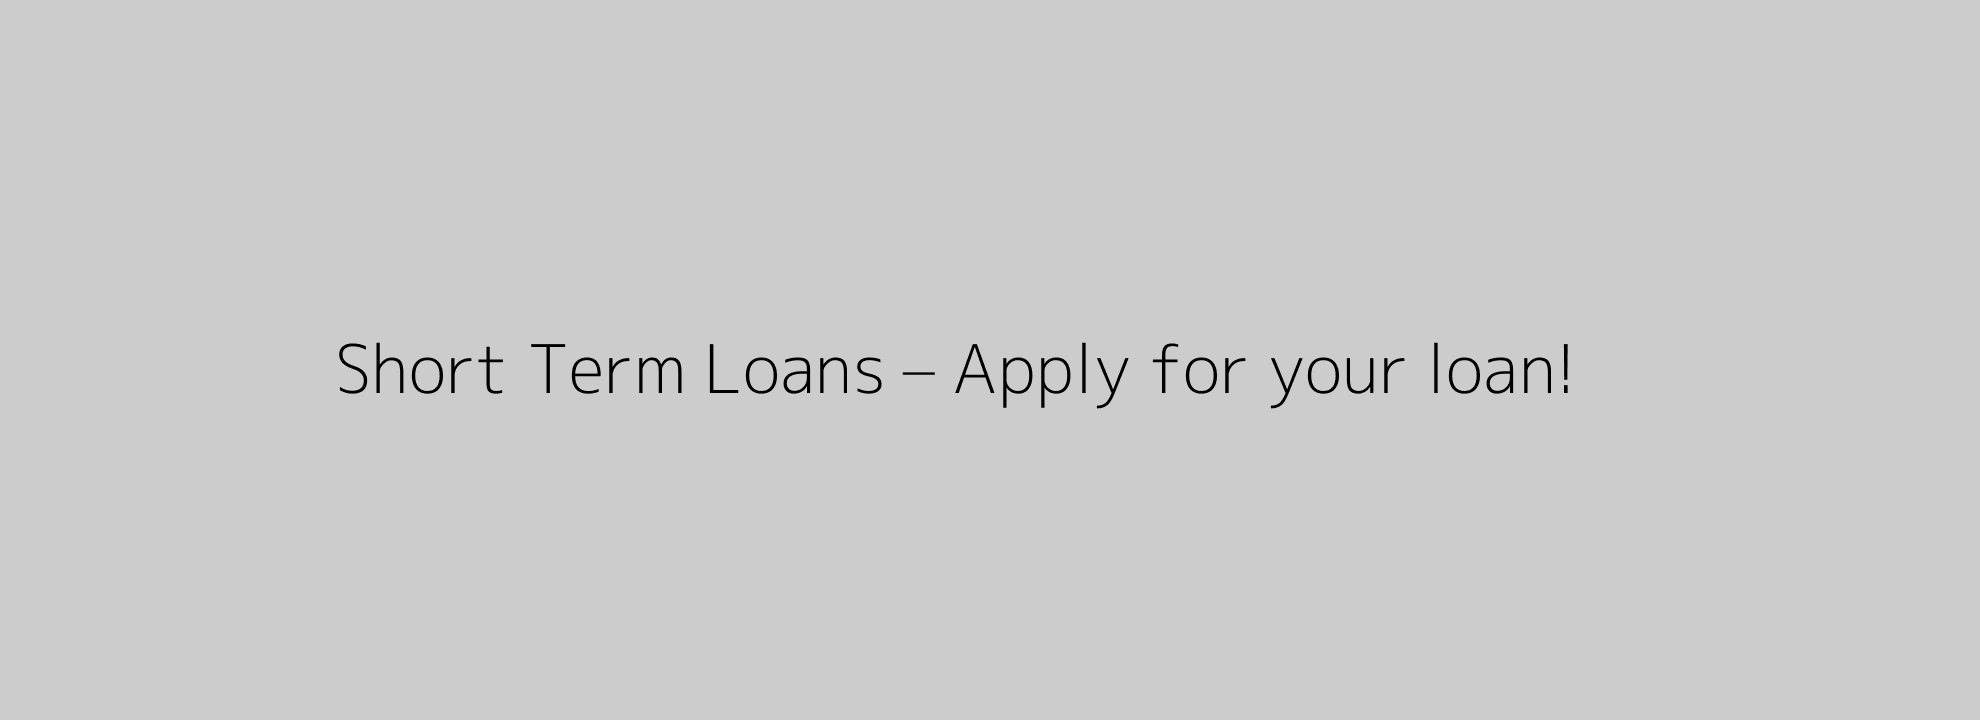 Short Term Loans – Apply for your loan!